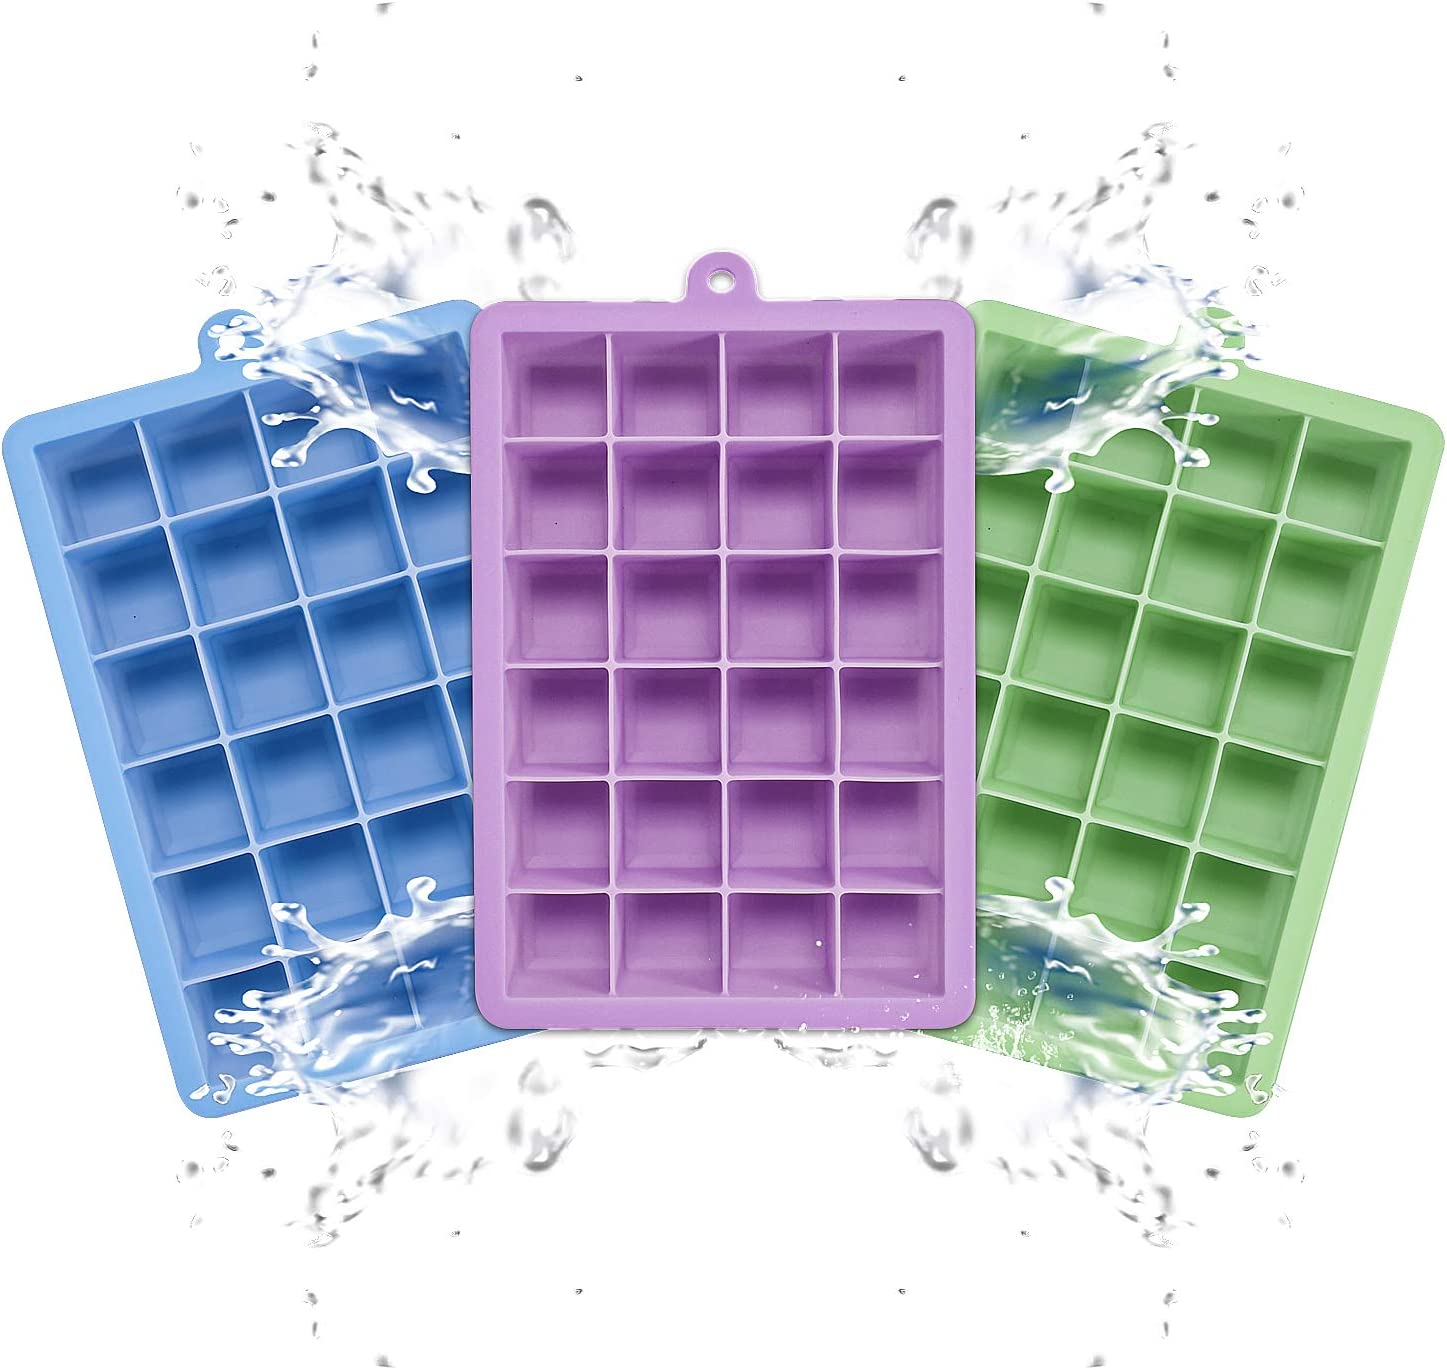 3 Pack Ice Cube Trays, 24 Cubes Easy Release Small Ice Cube Trays with Lids For Whiskey Storage, Cocktail, Beverages, Dishwasher Safe, BPA Free